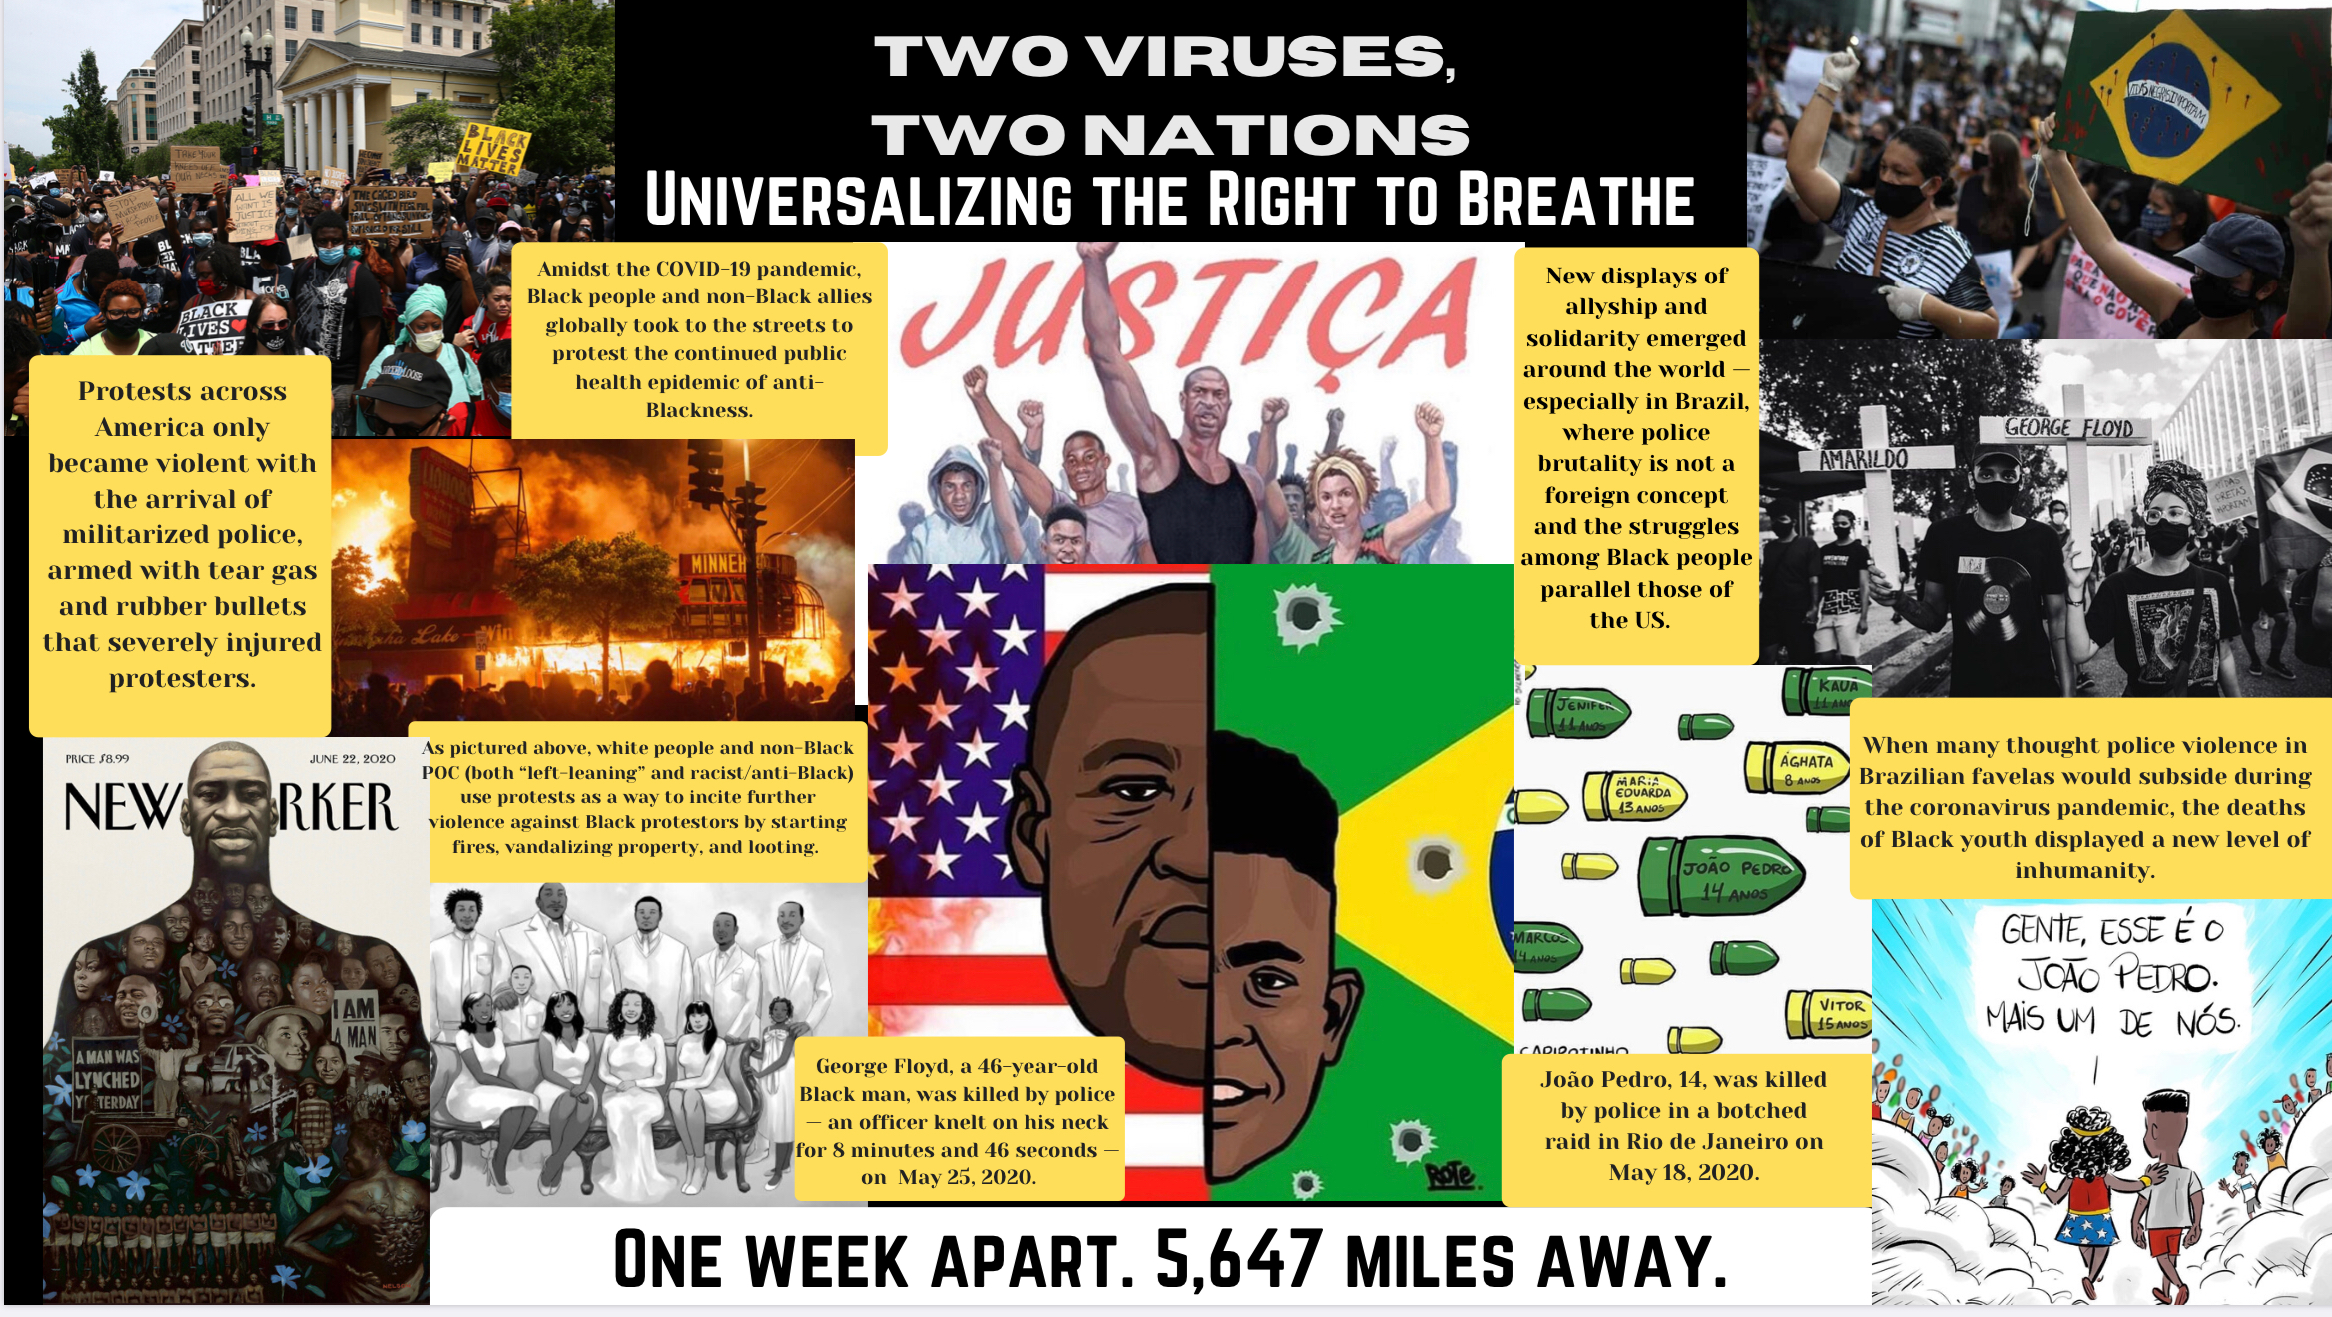 5.1 Two Viruses, Two Nations: Universalizing the Right to Breathe